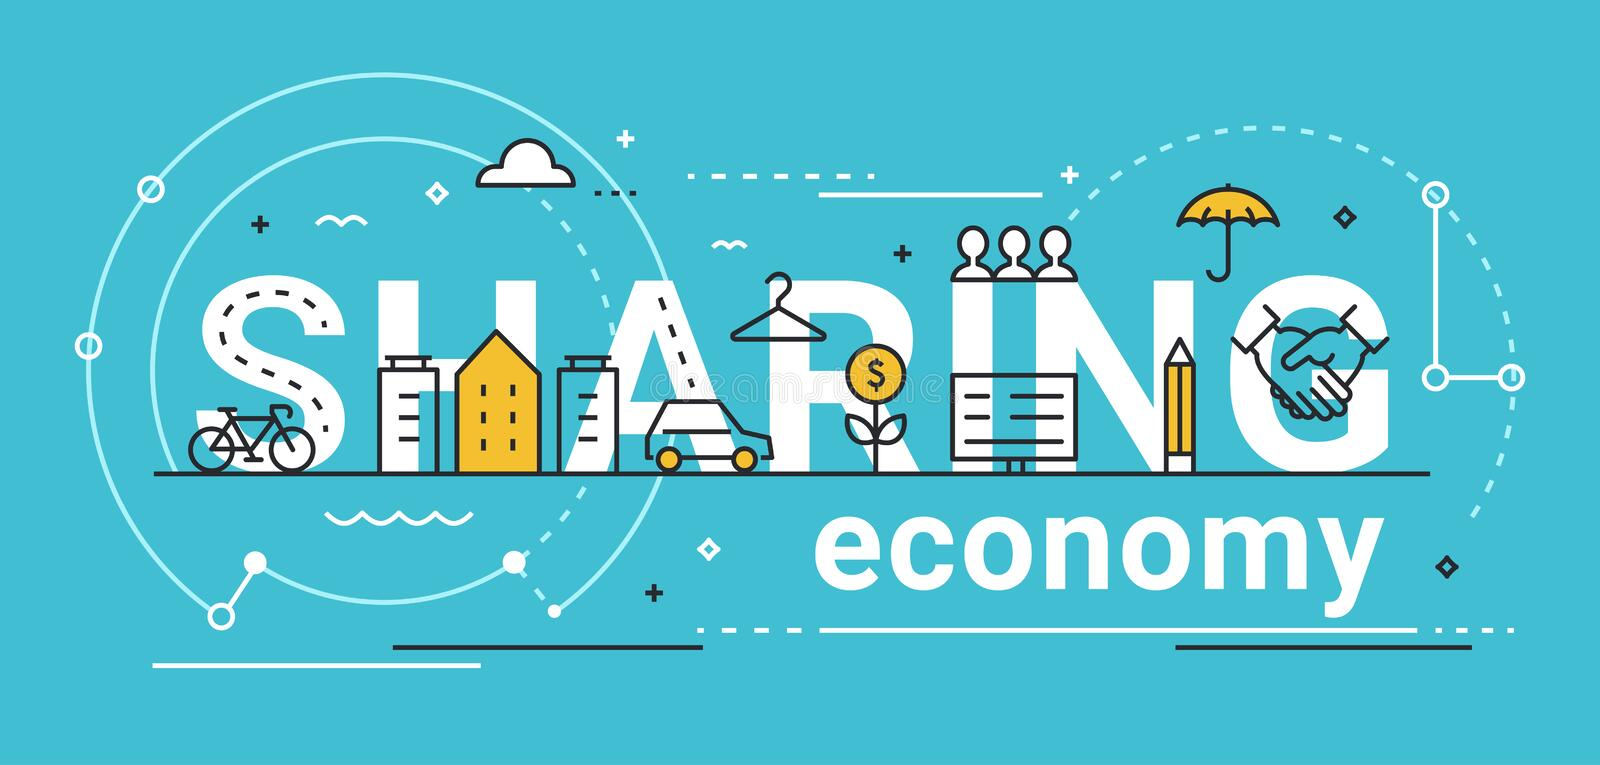 Sharing Economy Line Vector Concept Illustration royalty free illustration